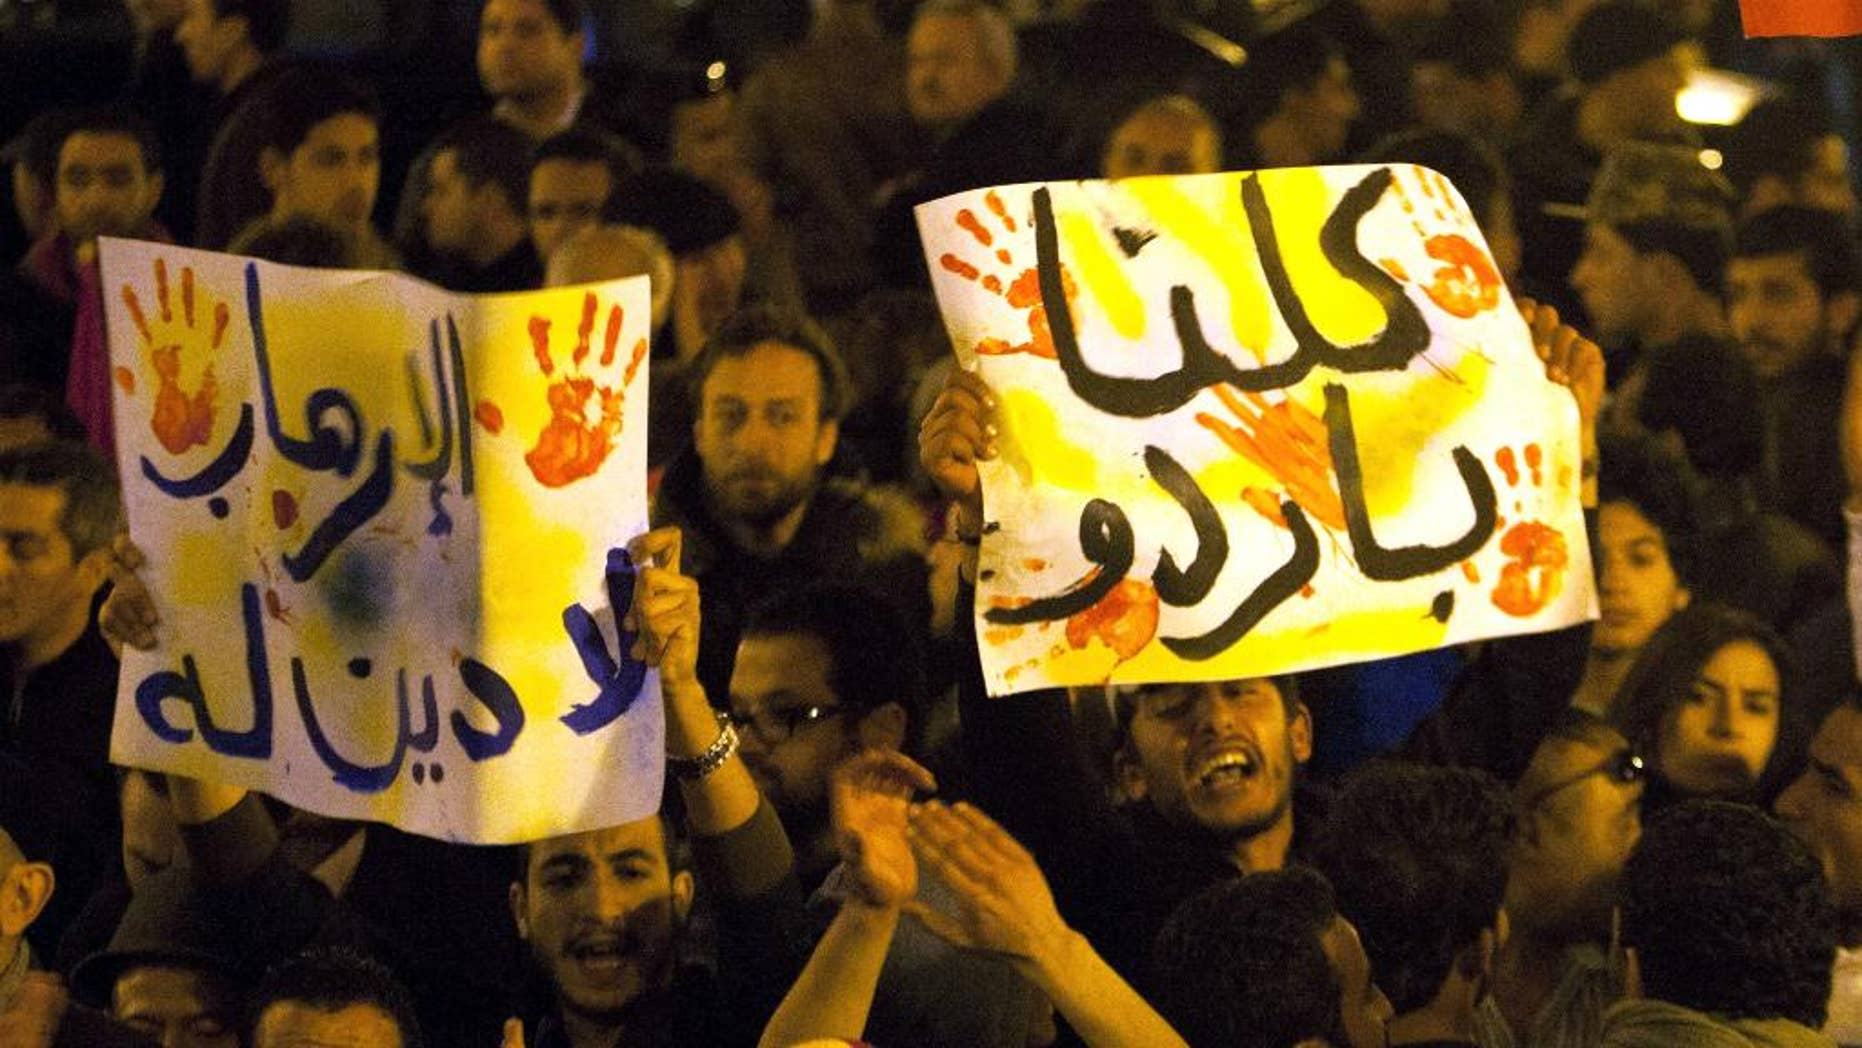 """Tunisians gather at Habib Bourguiba avenue to show solidarity with the victims of the attack at a museum in Tunis, Wednesday, March 18, 2015. Gunmen opened fire Wednesday at a major museum in Tunis, killing scores of people, mostly foreigners, in one of the worst attacks in this struggling North African democracy that depends heavily on tourism. Placard reads, """"no to terrorists"""". (AP Photo/Adel Mhamdi)"""